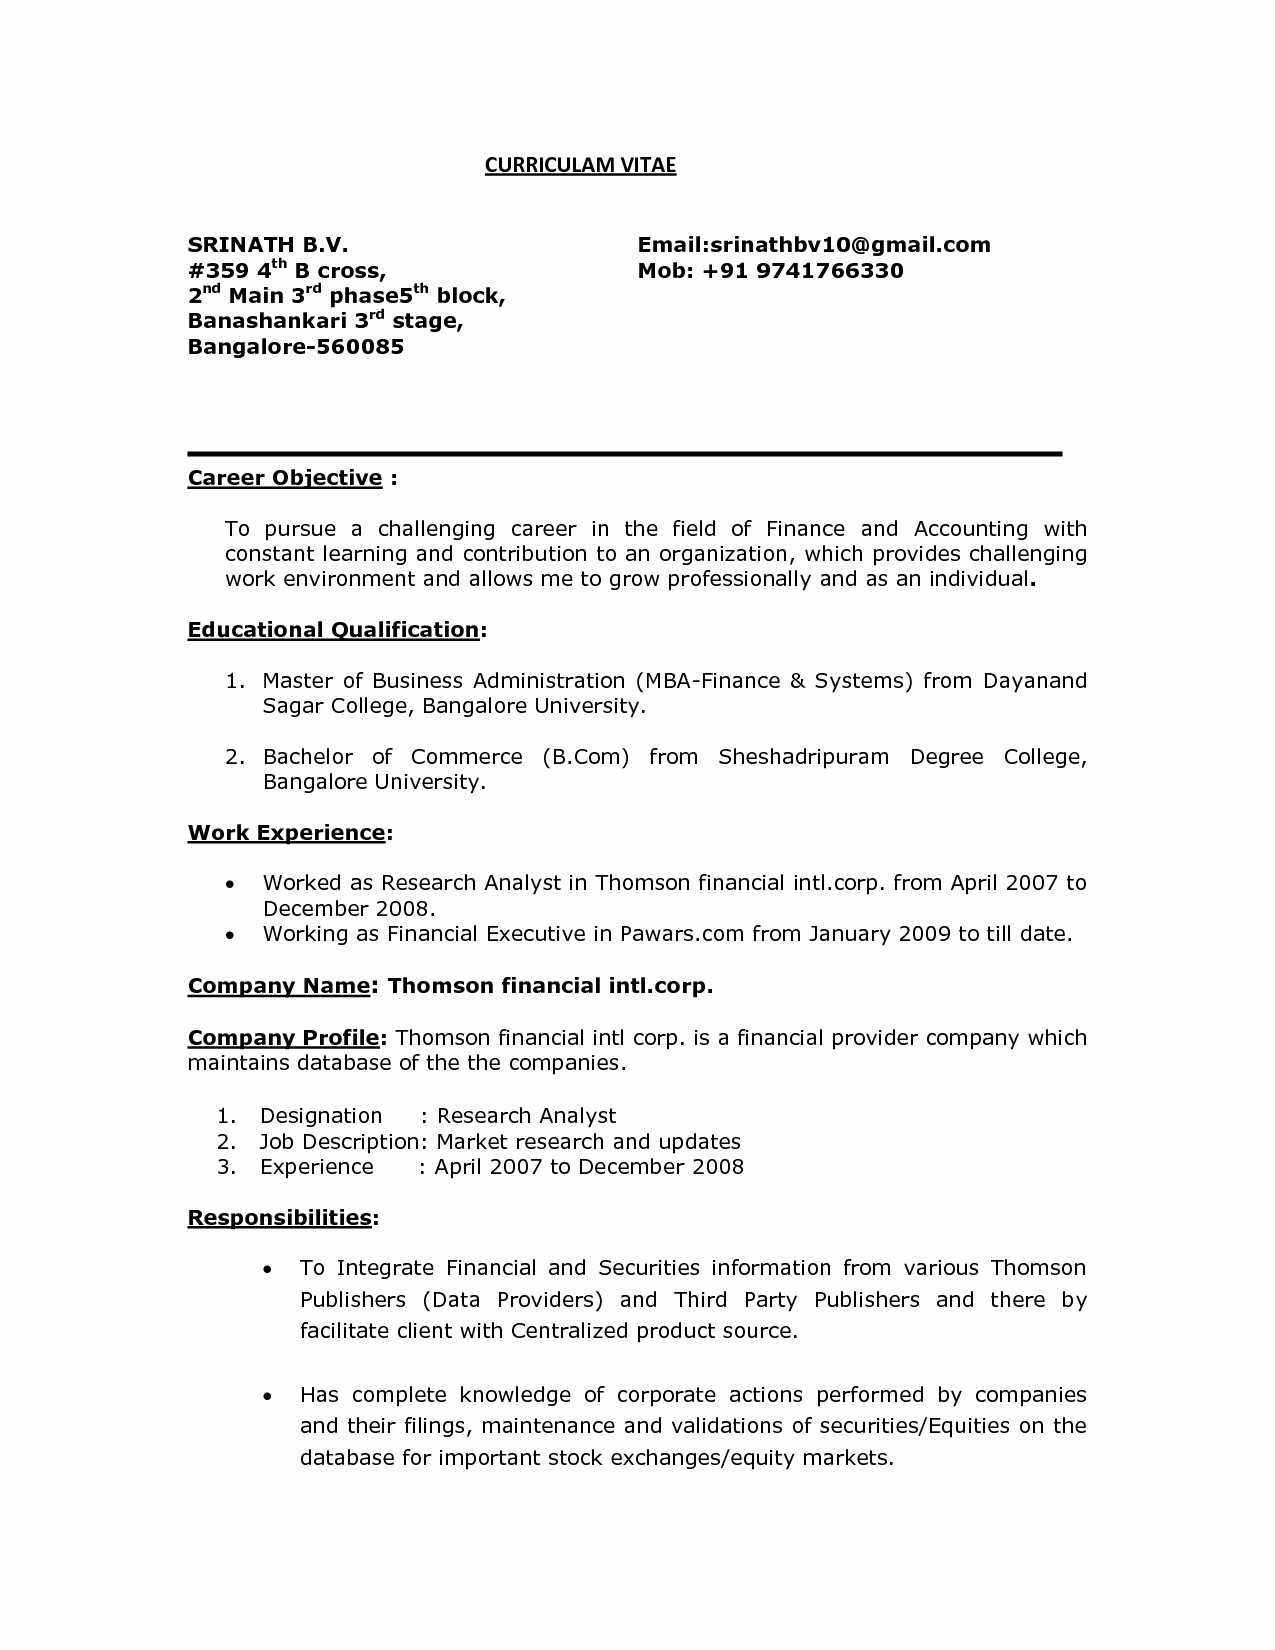 Mba Resume Template - Resume for Research Analyst Fresher Beautiful Law Student Resume